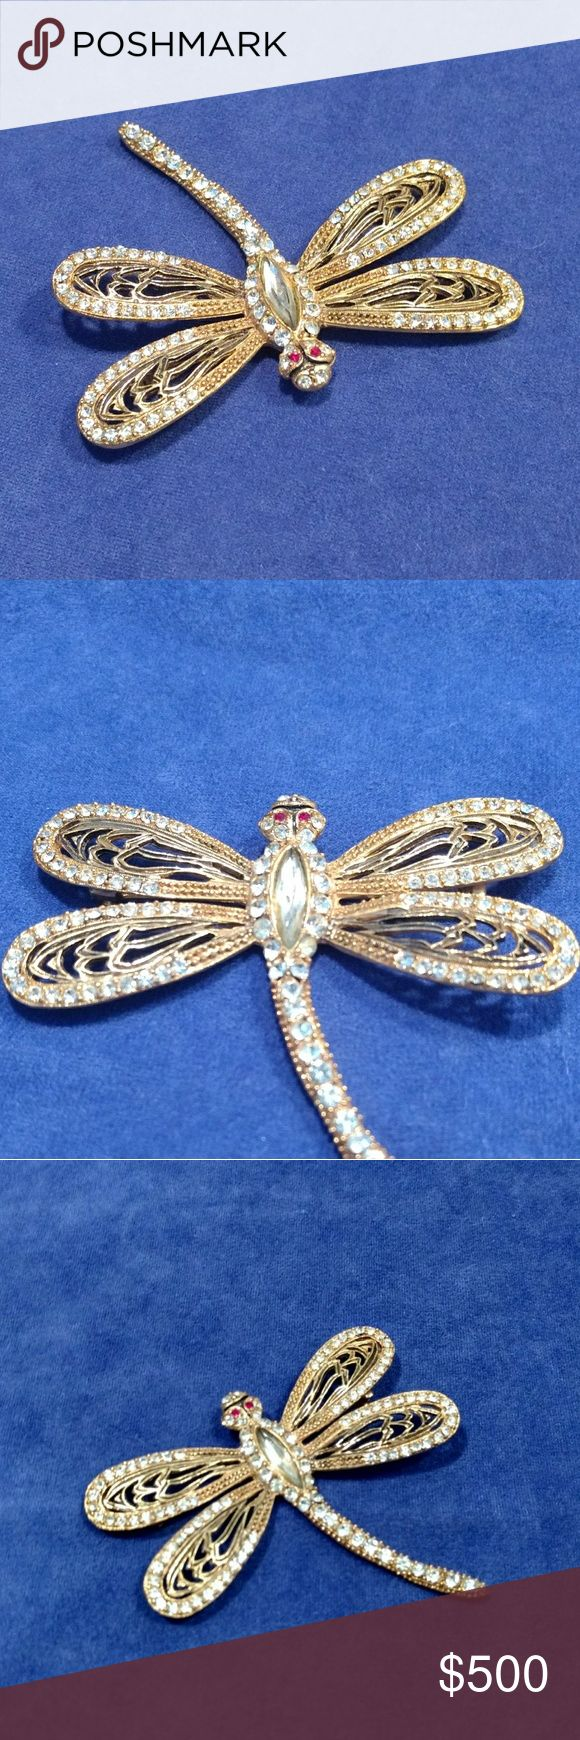 Rare, Gorgeous Vintage Dragonfly Brooch Gorgeous Vintage Dragonfly Brooch. Covered in stones, exquisite in detail and design. The pin is from the '50s or '60's and is in excellent condition. All rhinestones in tact. Vintage Jewelry Brooches